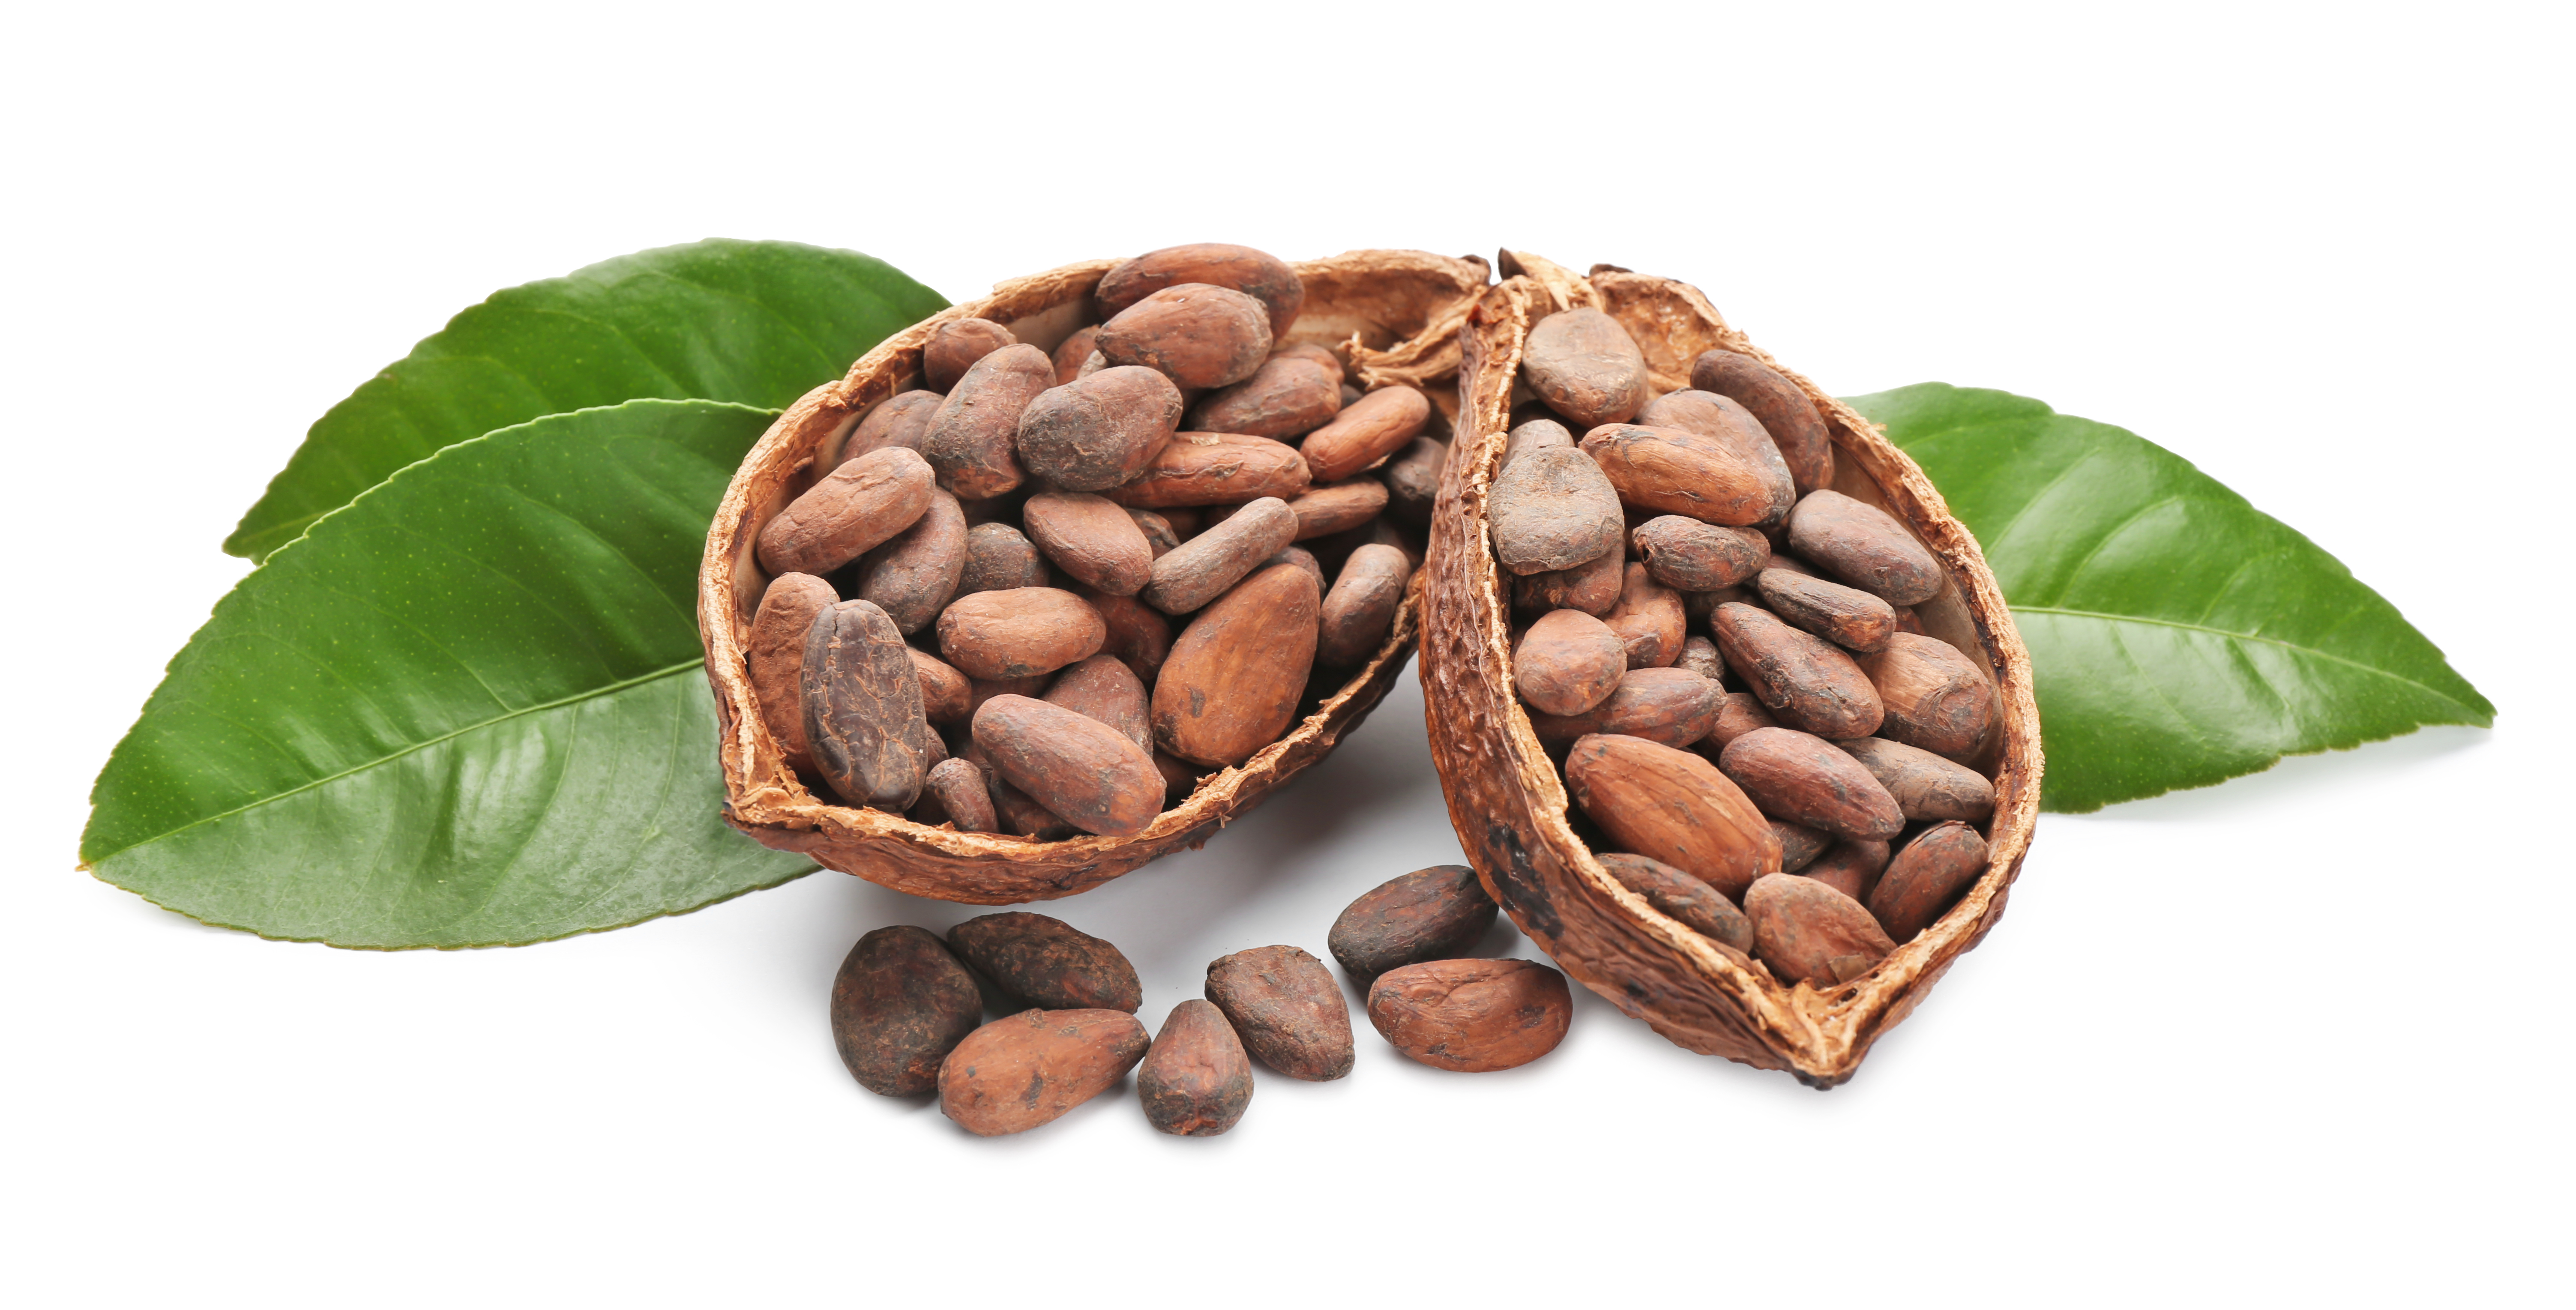 Halves of ripe cocoa pod with beans on white background